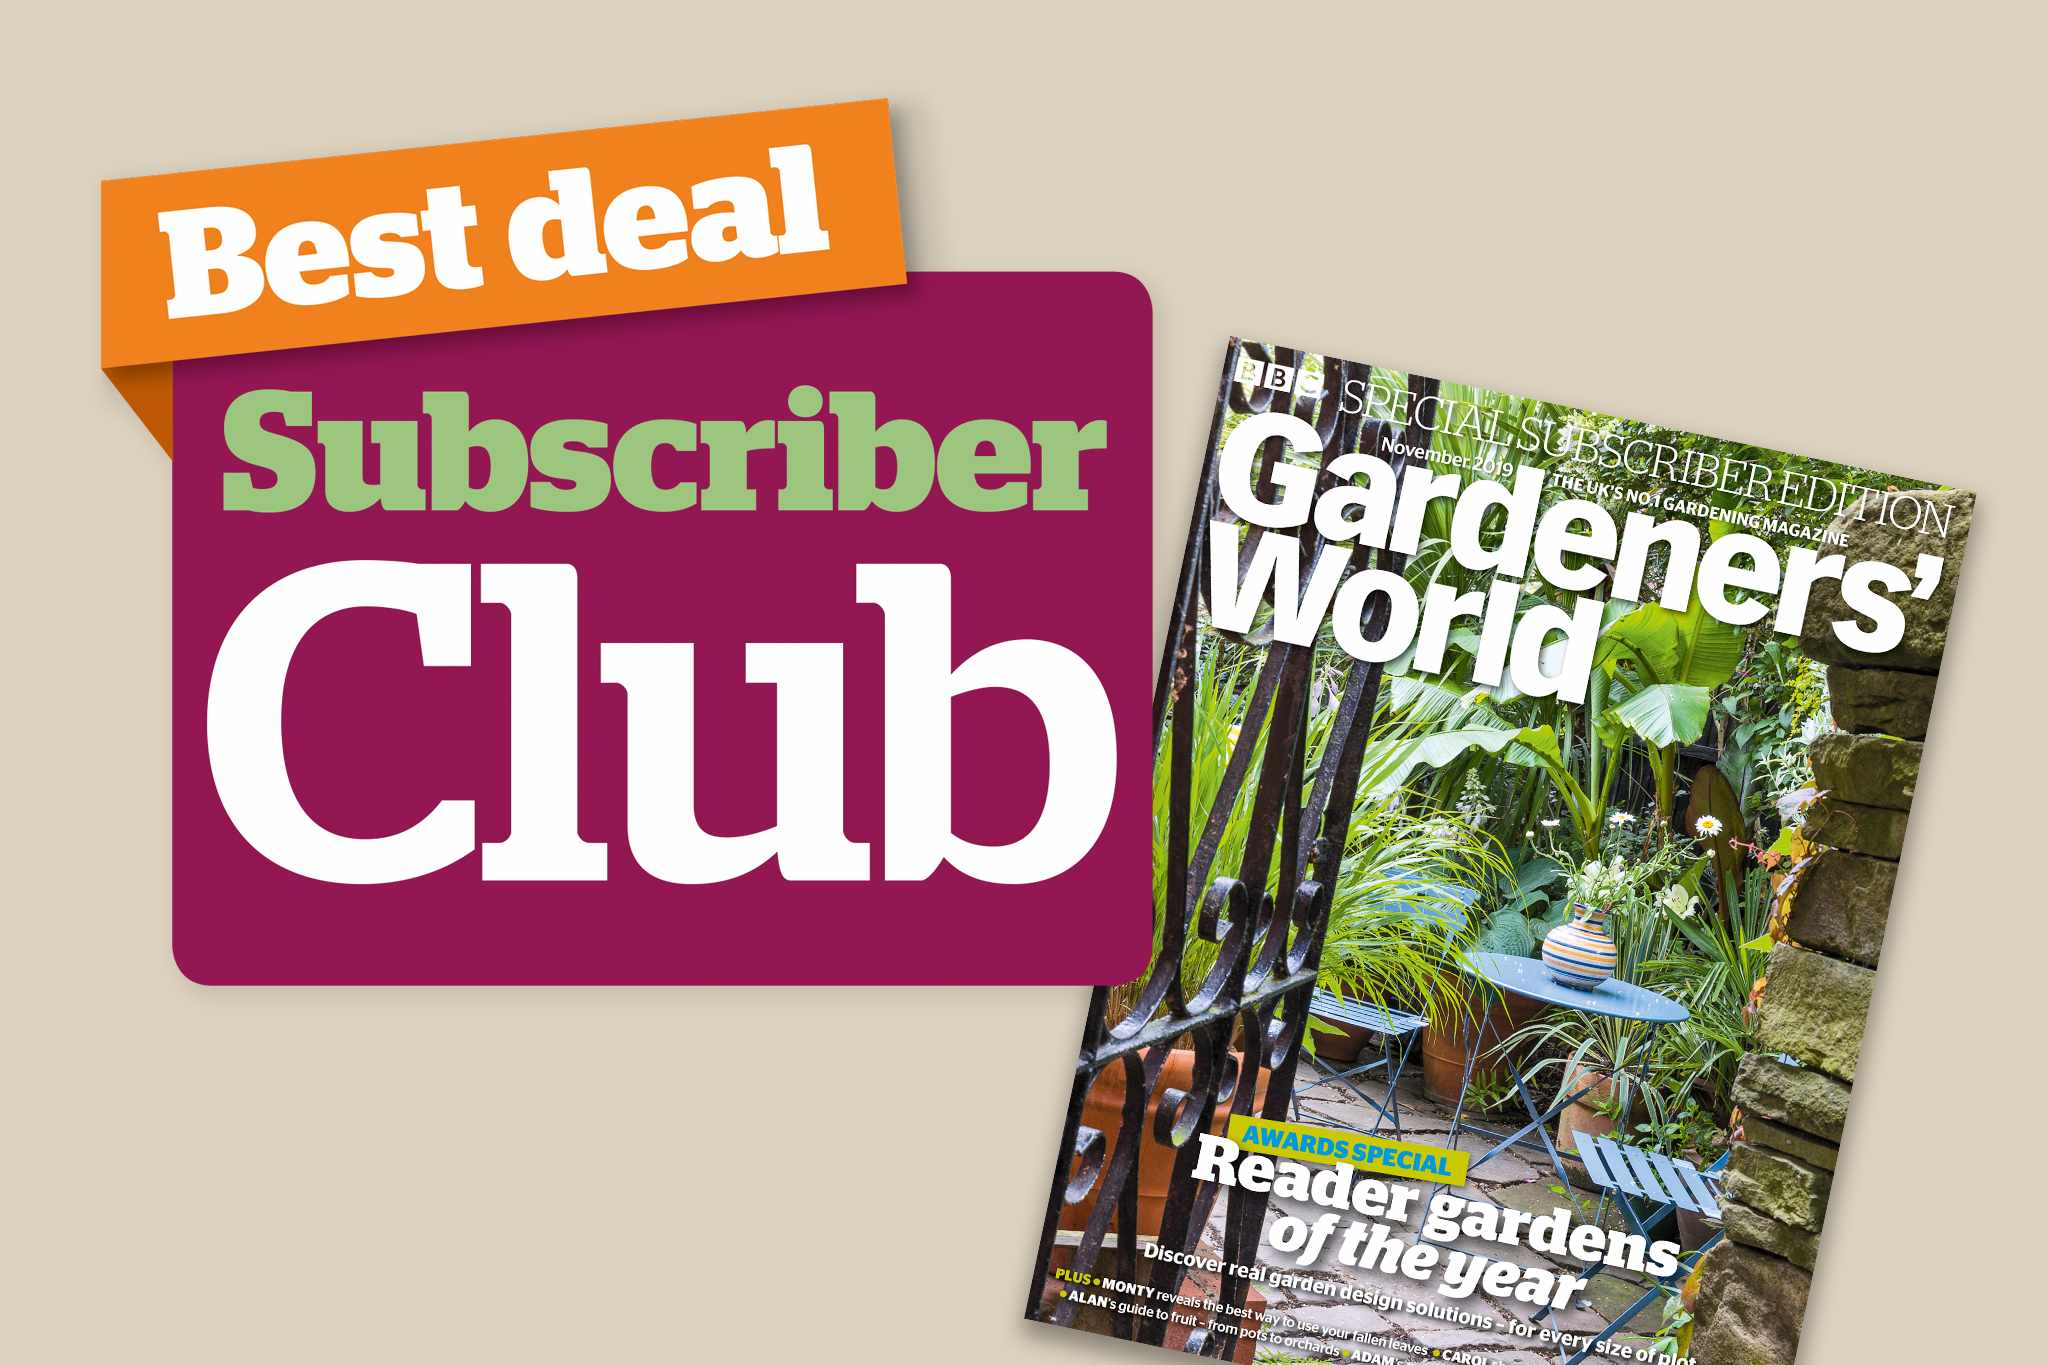 Subscribers save 10% with selected suppliers - new November issue